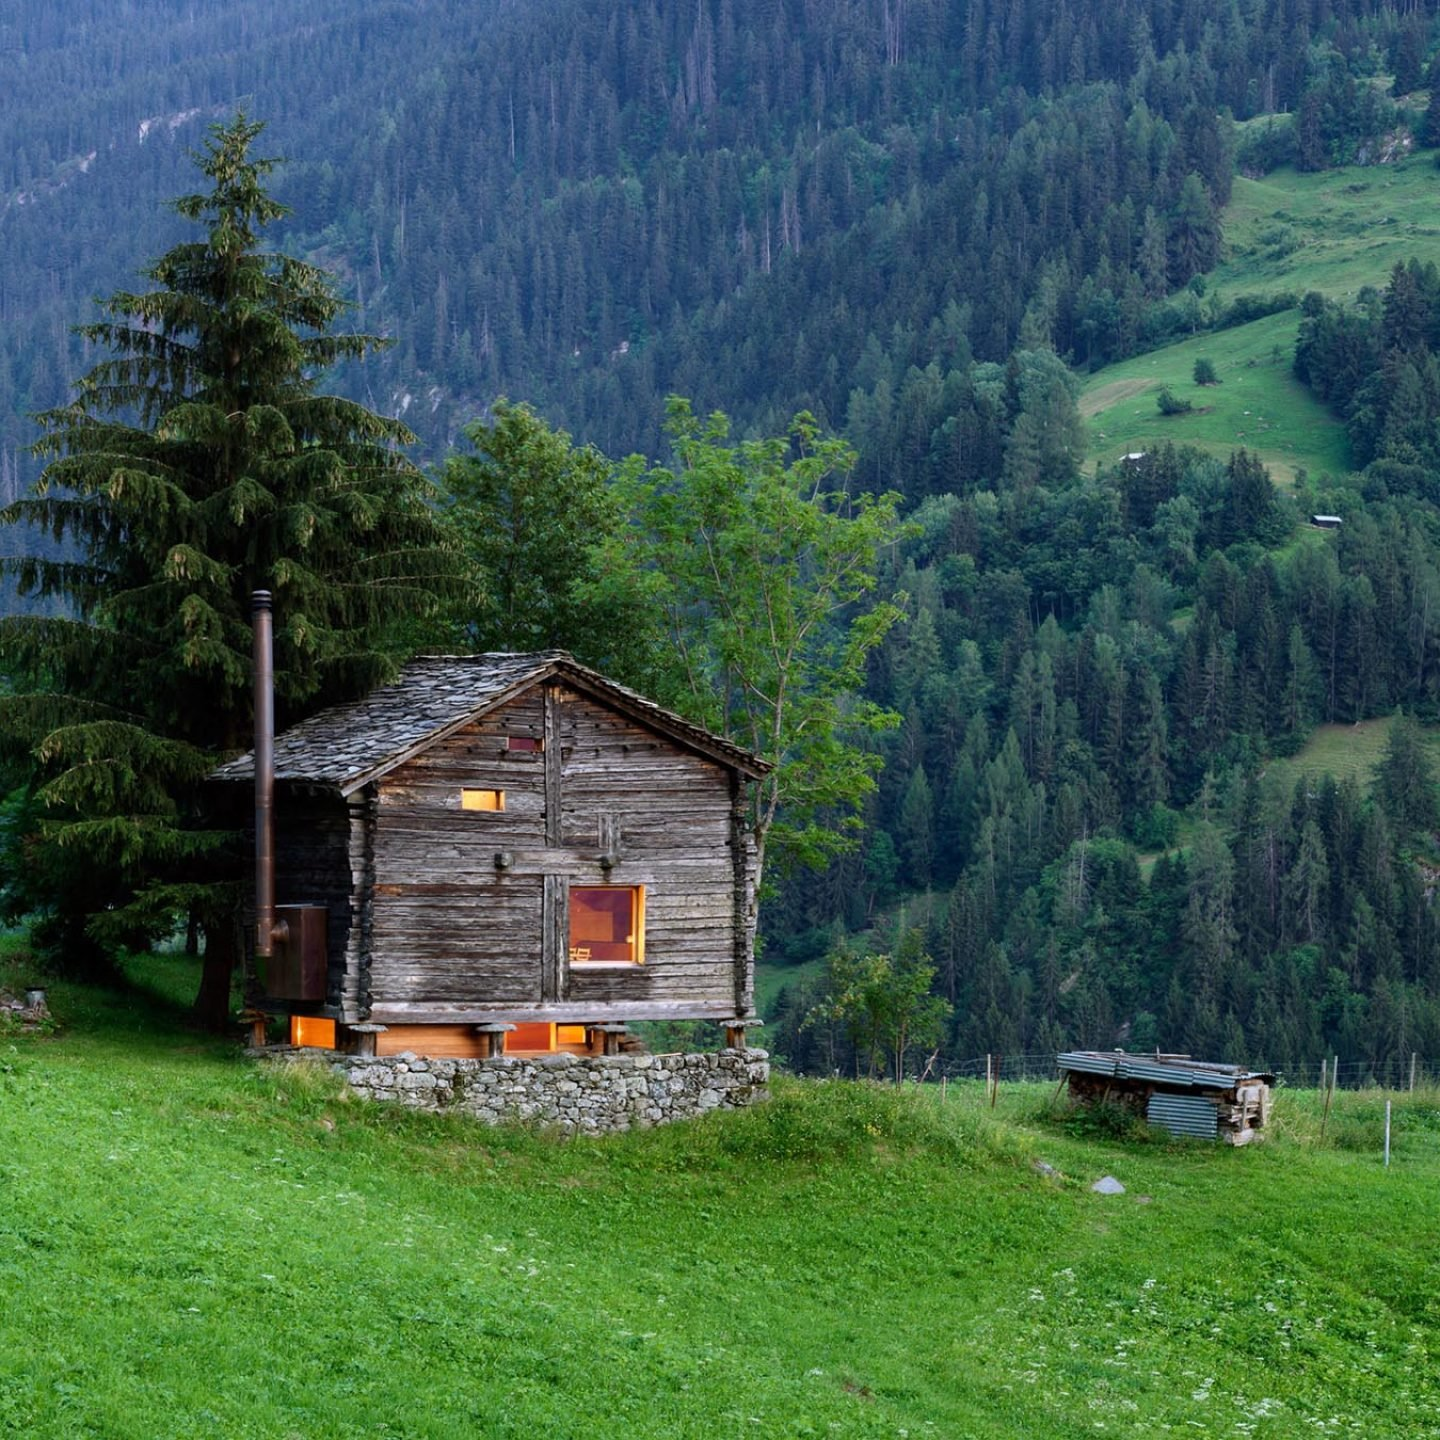 Koliba Home: A Tiny Cabin In The Swiss Alps